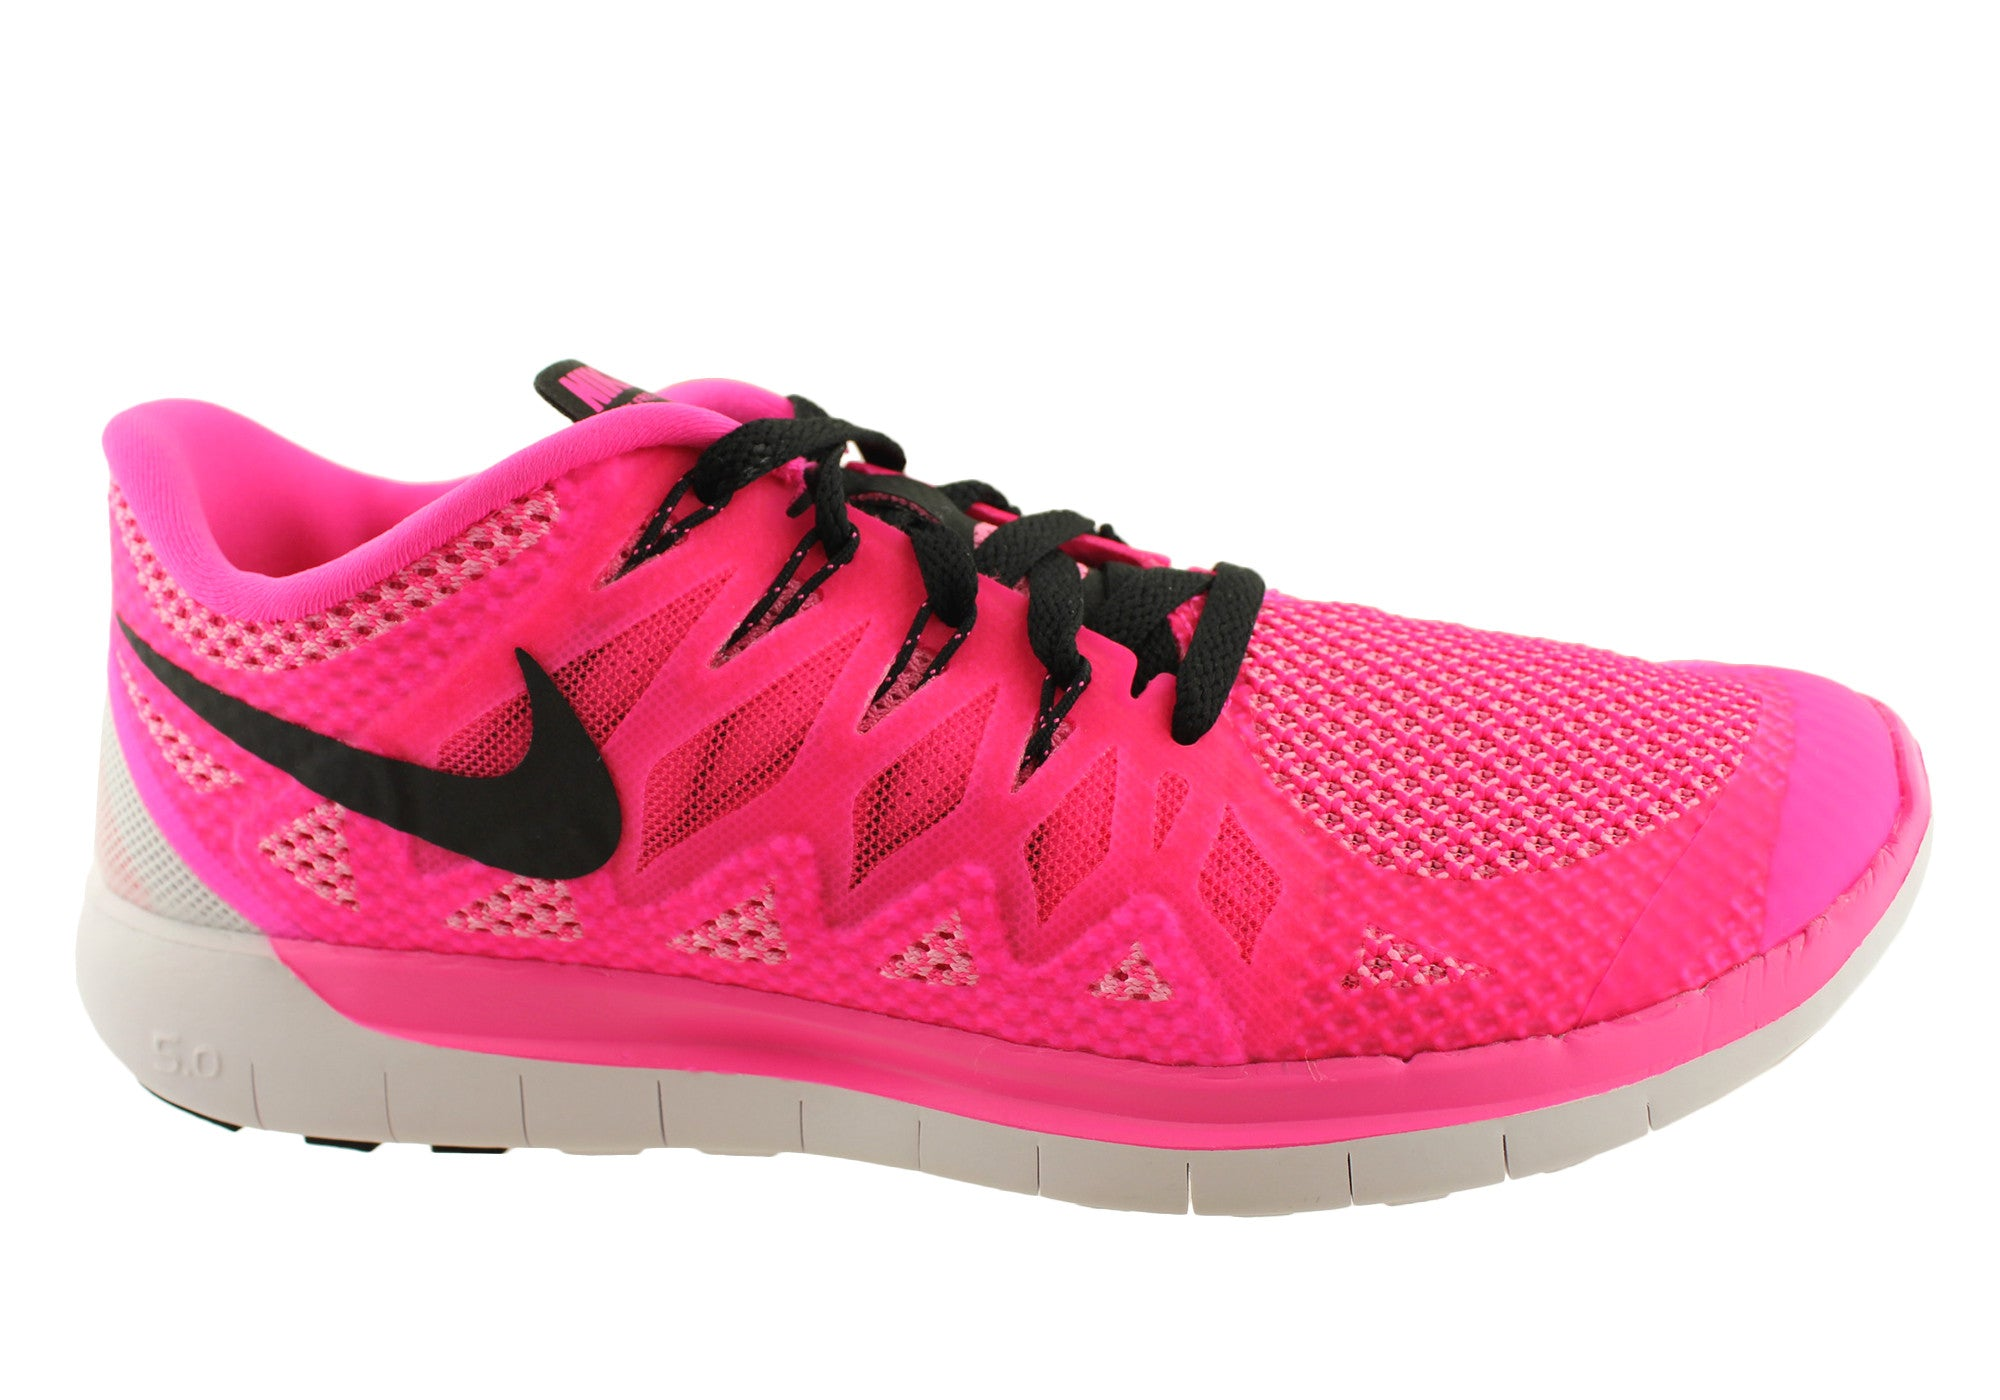 a1c352d2931df Home Nike Free Run 5.0 Womens Lightweight Running Shoes. Pink  ...